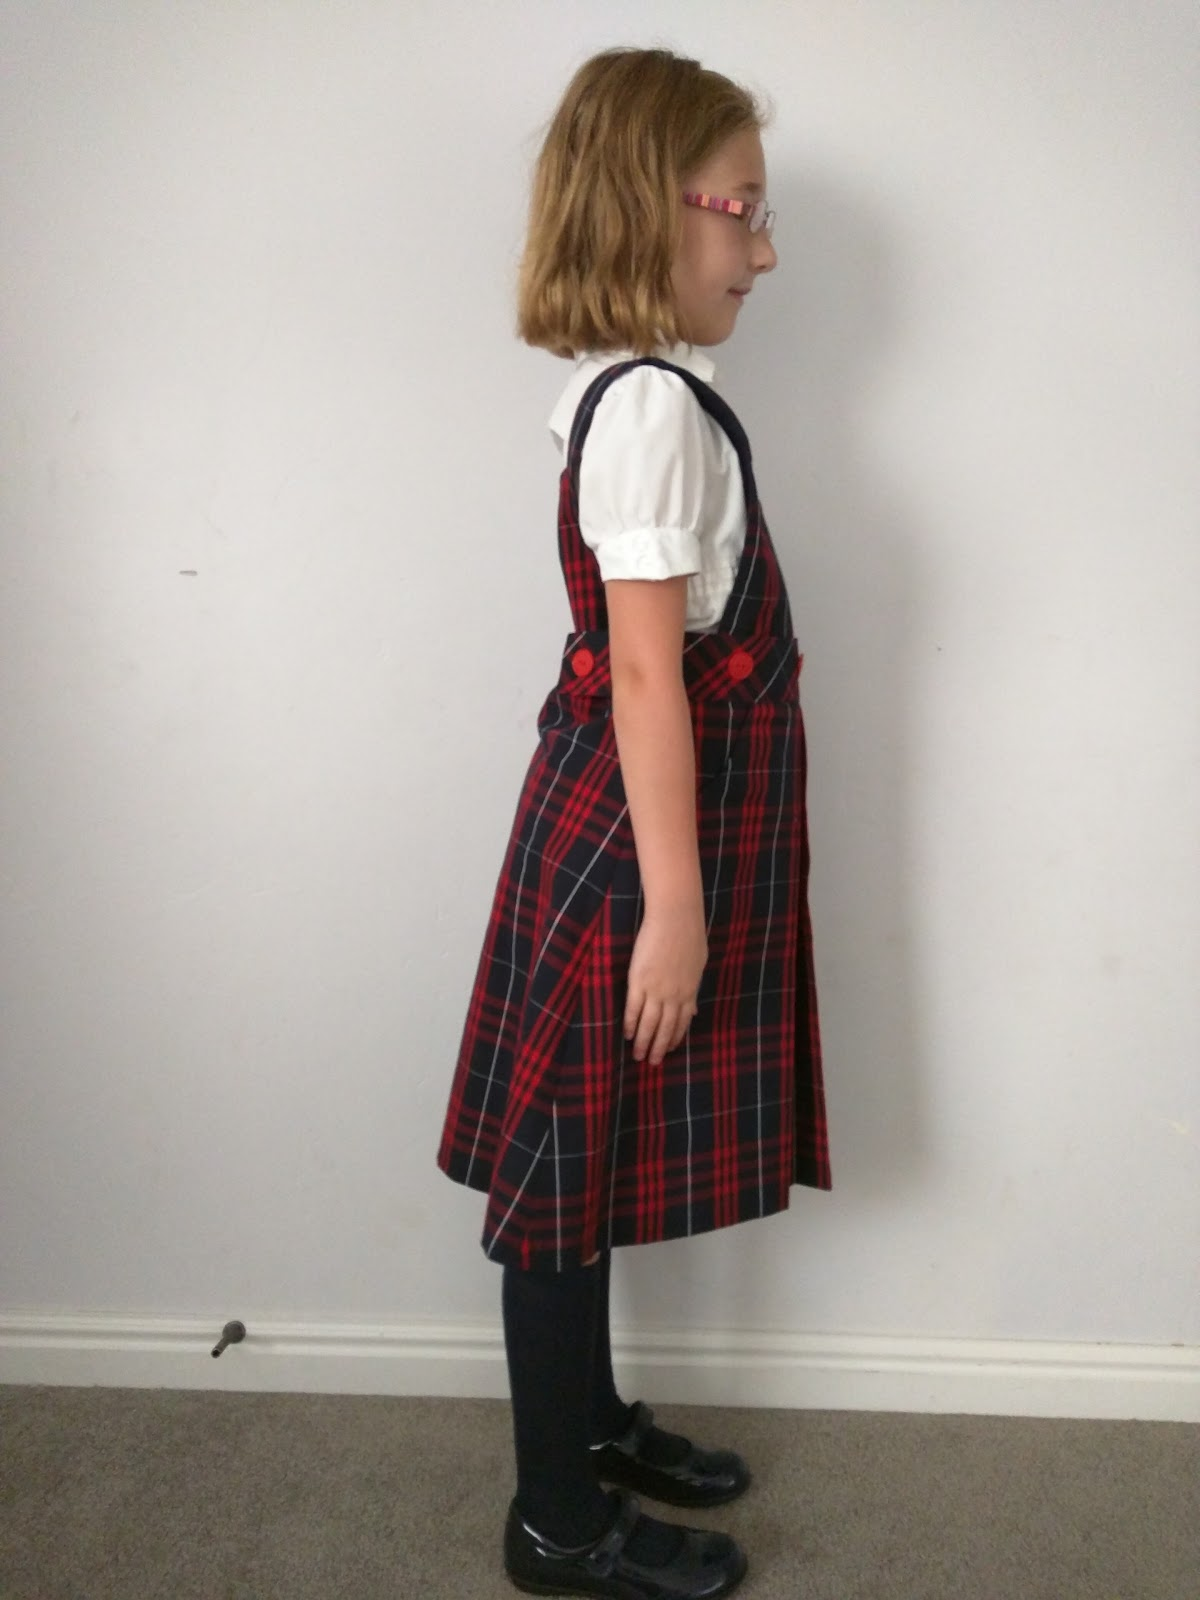 Goddess of sewing back to school sewing uniform style back to school sewing uniform style jeuxipadfo Images